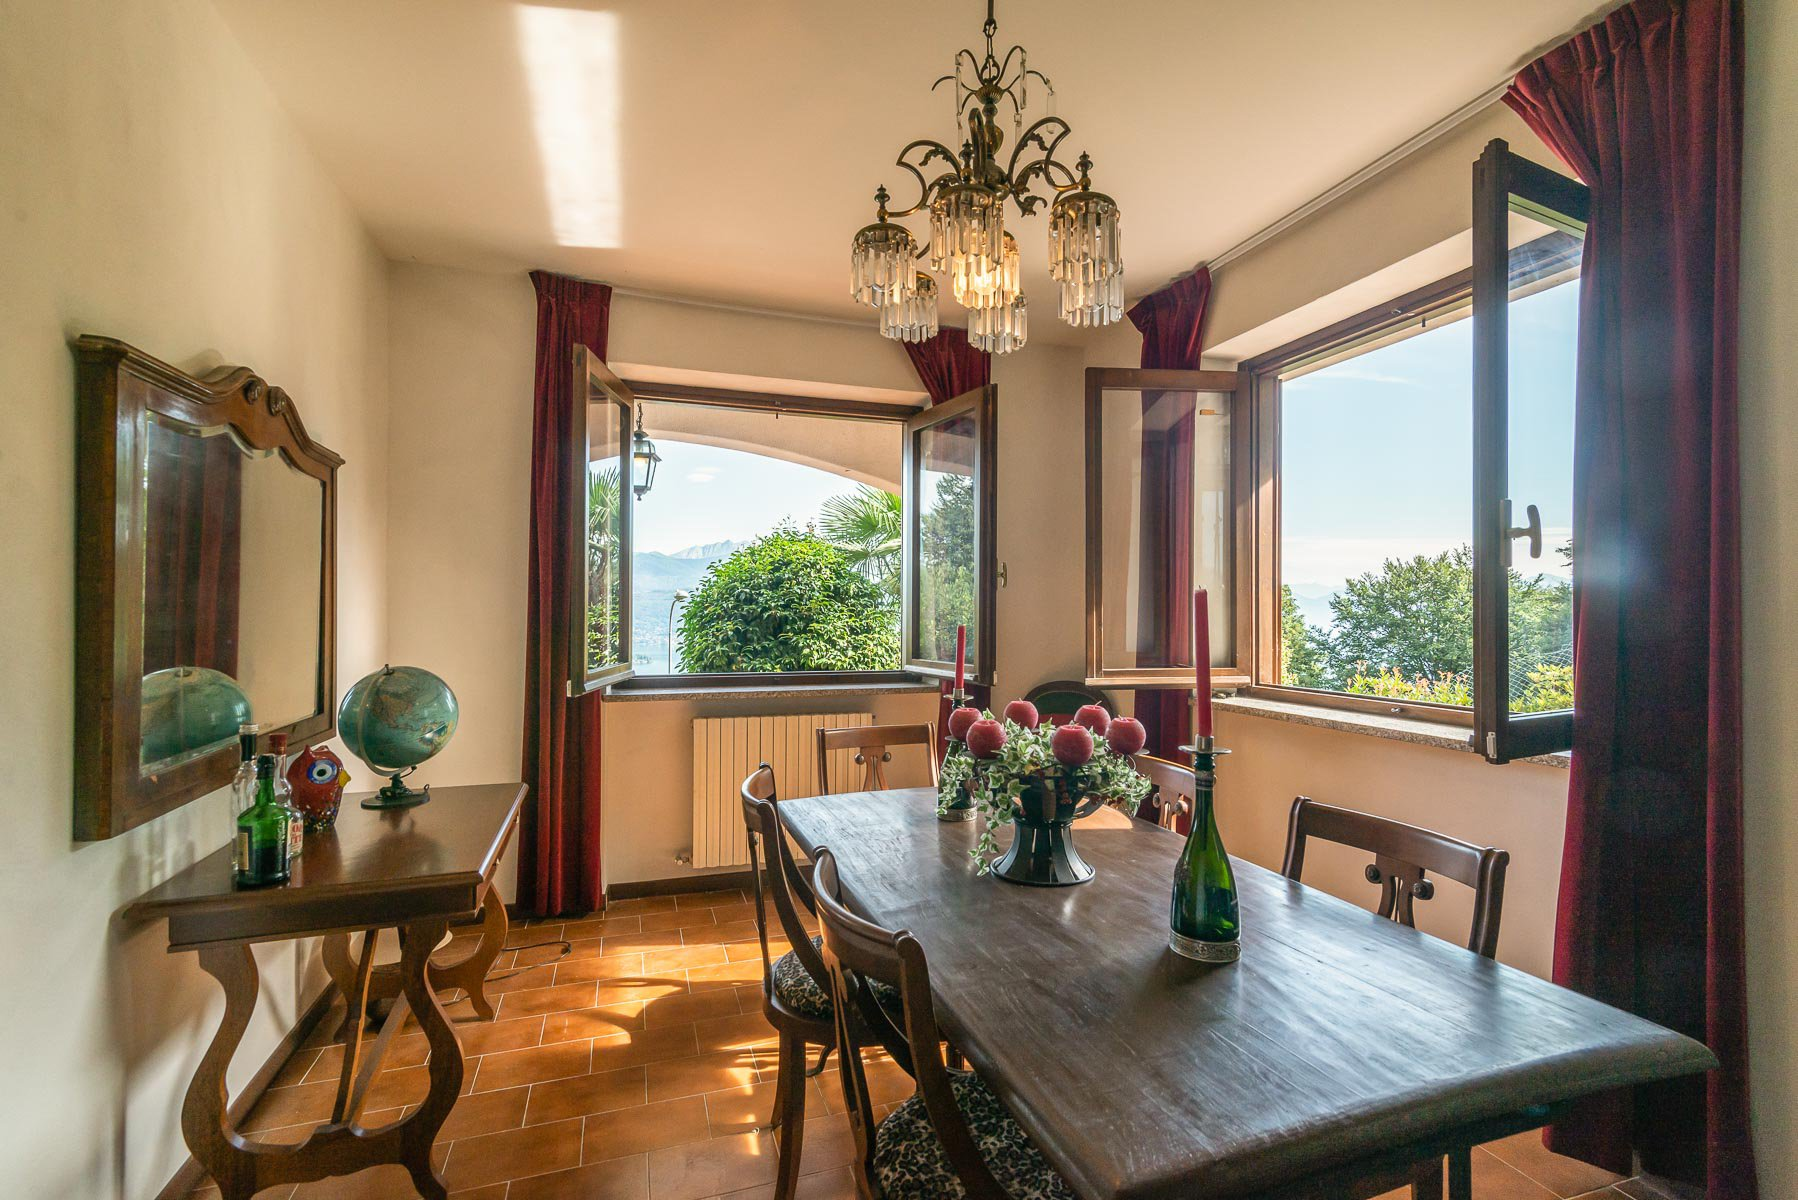 Villa for sale on the hill of Stresa with lake view- wide dining room